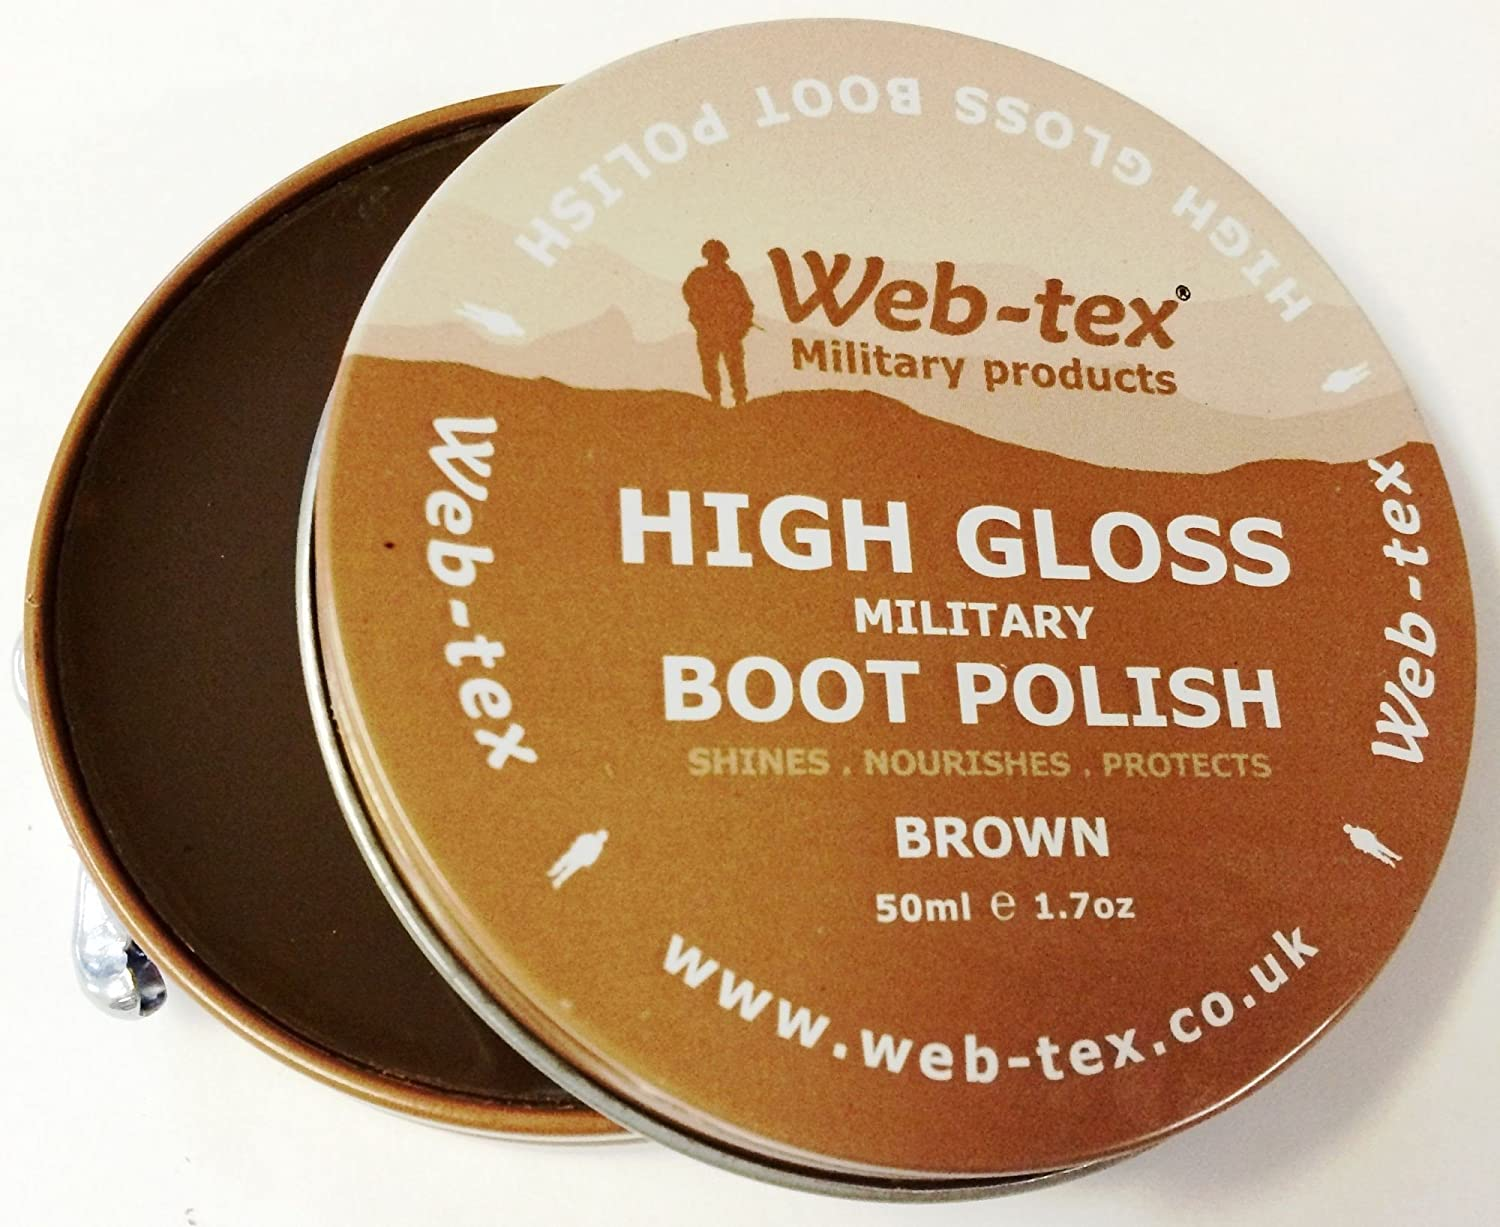 Web Tex Military High Gloss MTP BROWN Parade Boot & Shoe Polish Army Cadet RAF by Web-tex